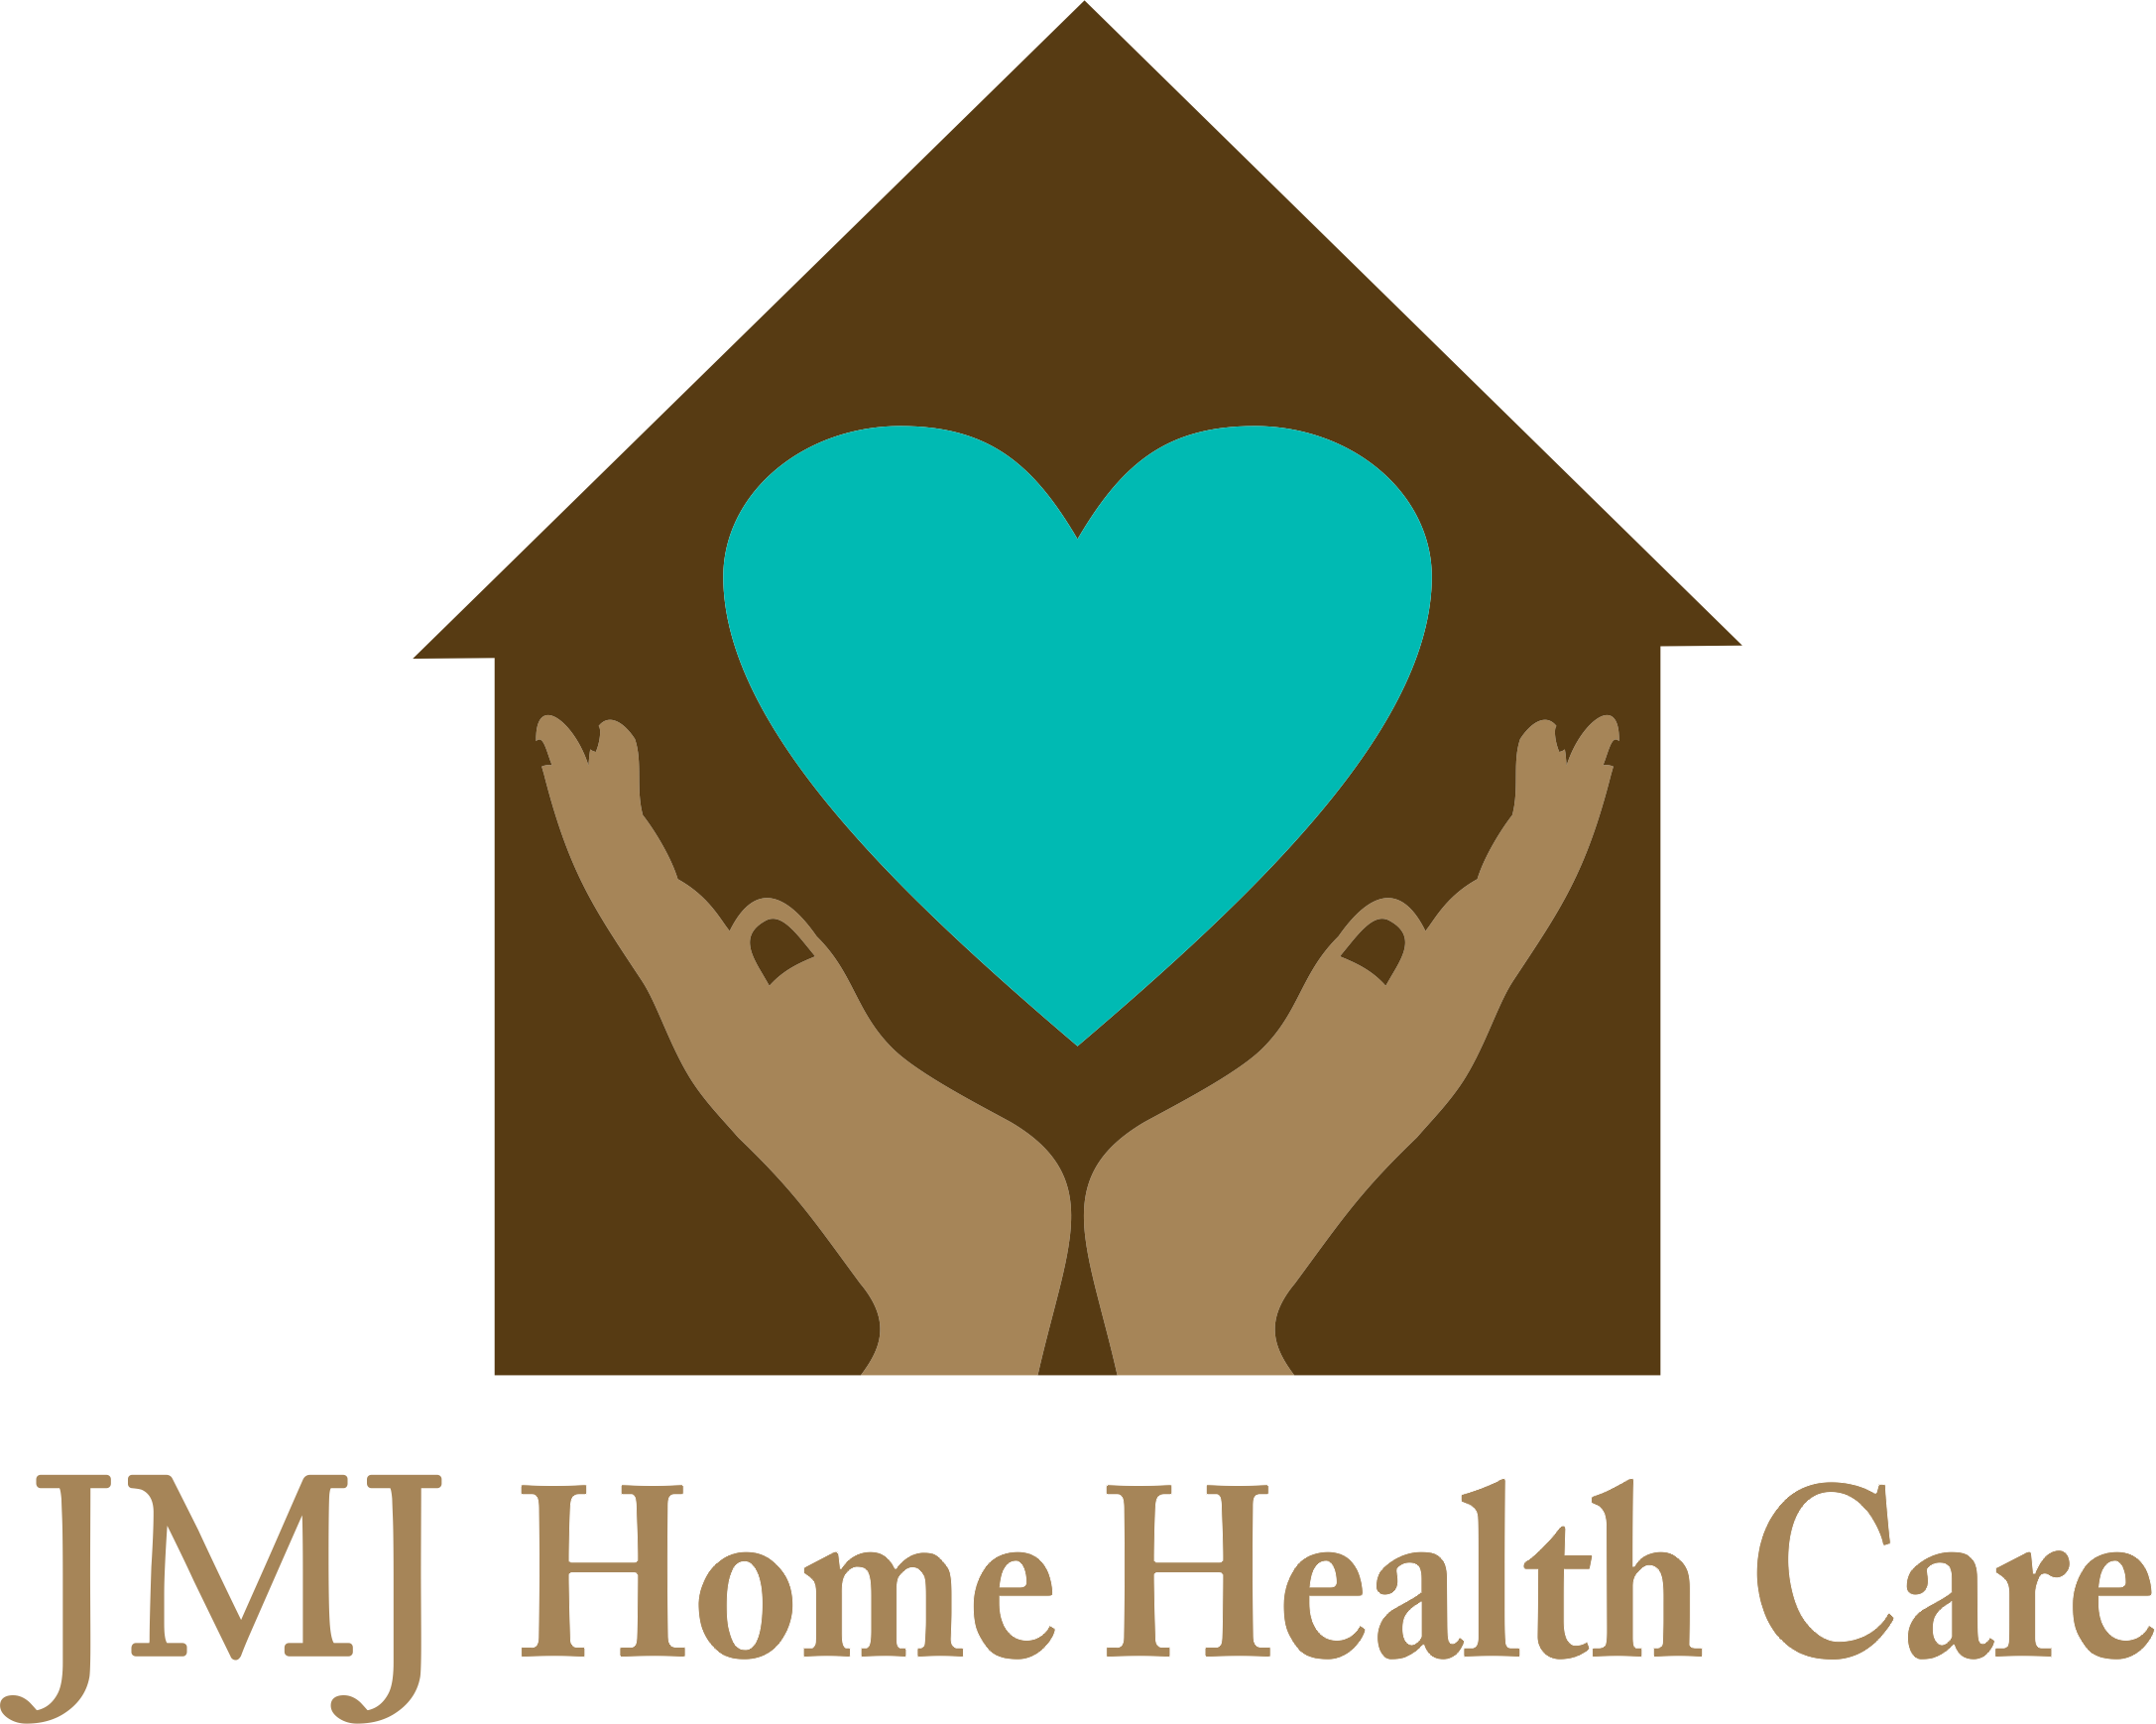 JMJ Home Health Care